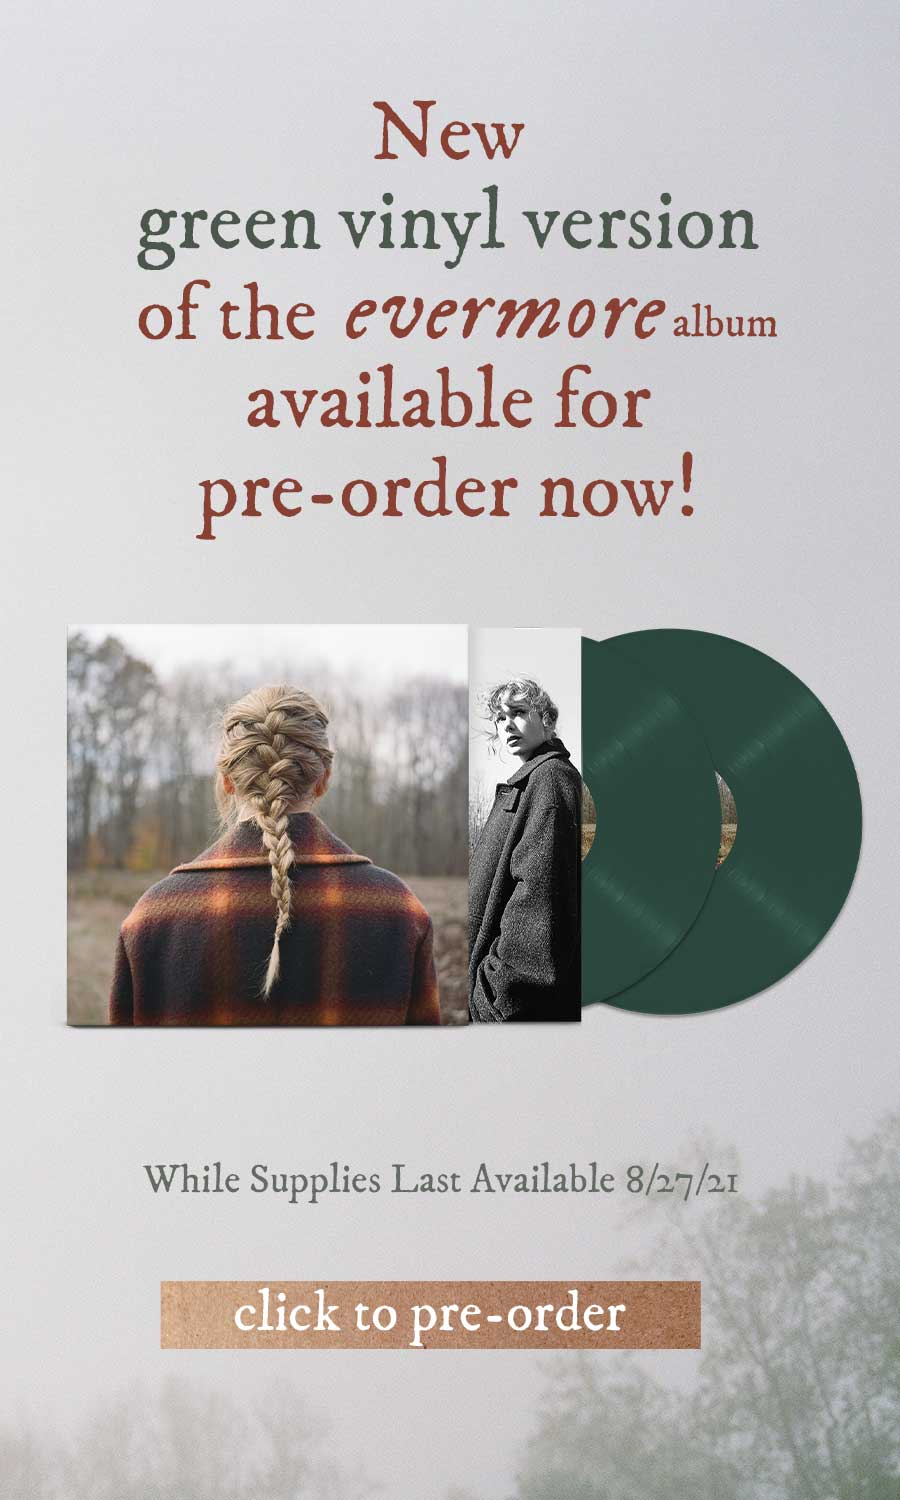 New green vinyl version of the evermore album available for pre-order now! While supplies last // Available 8/27/21